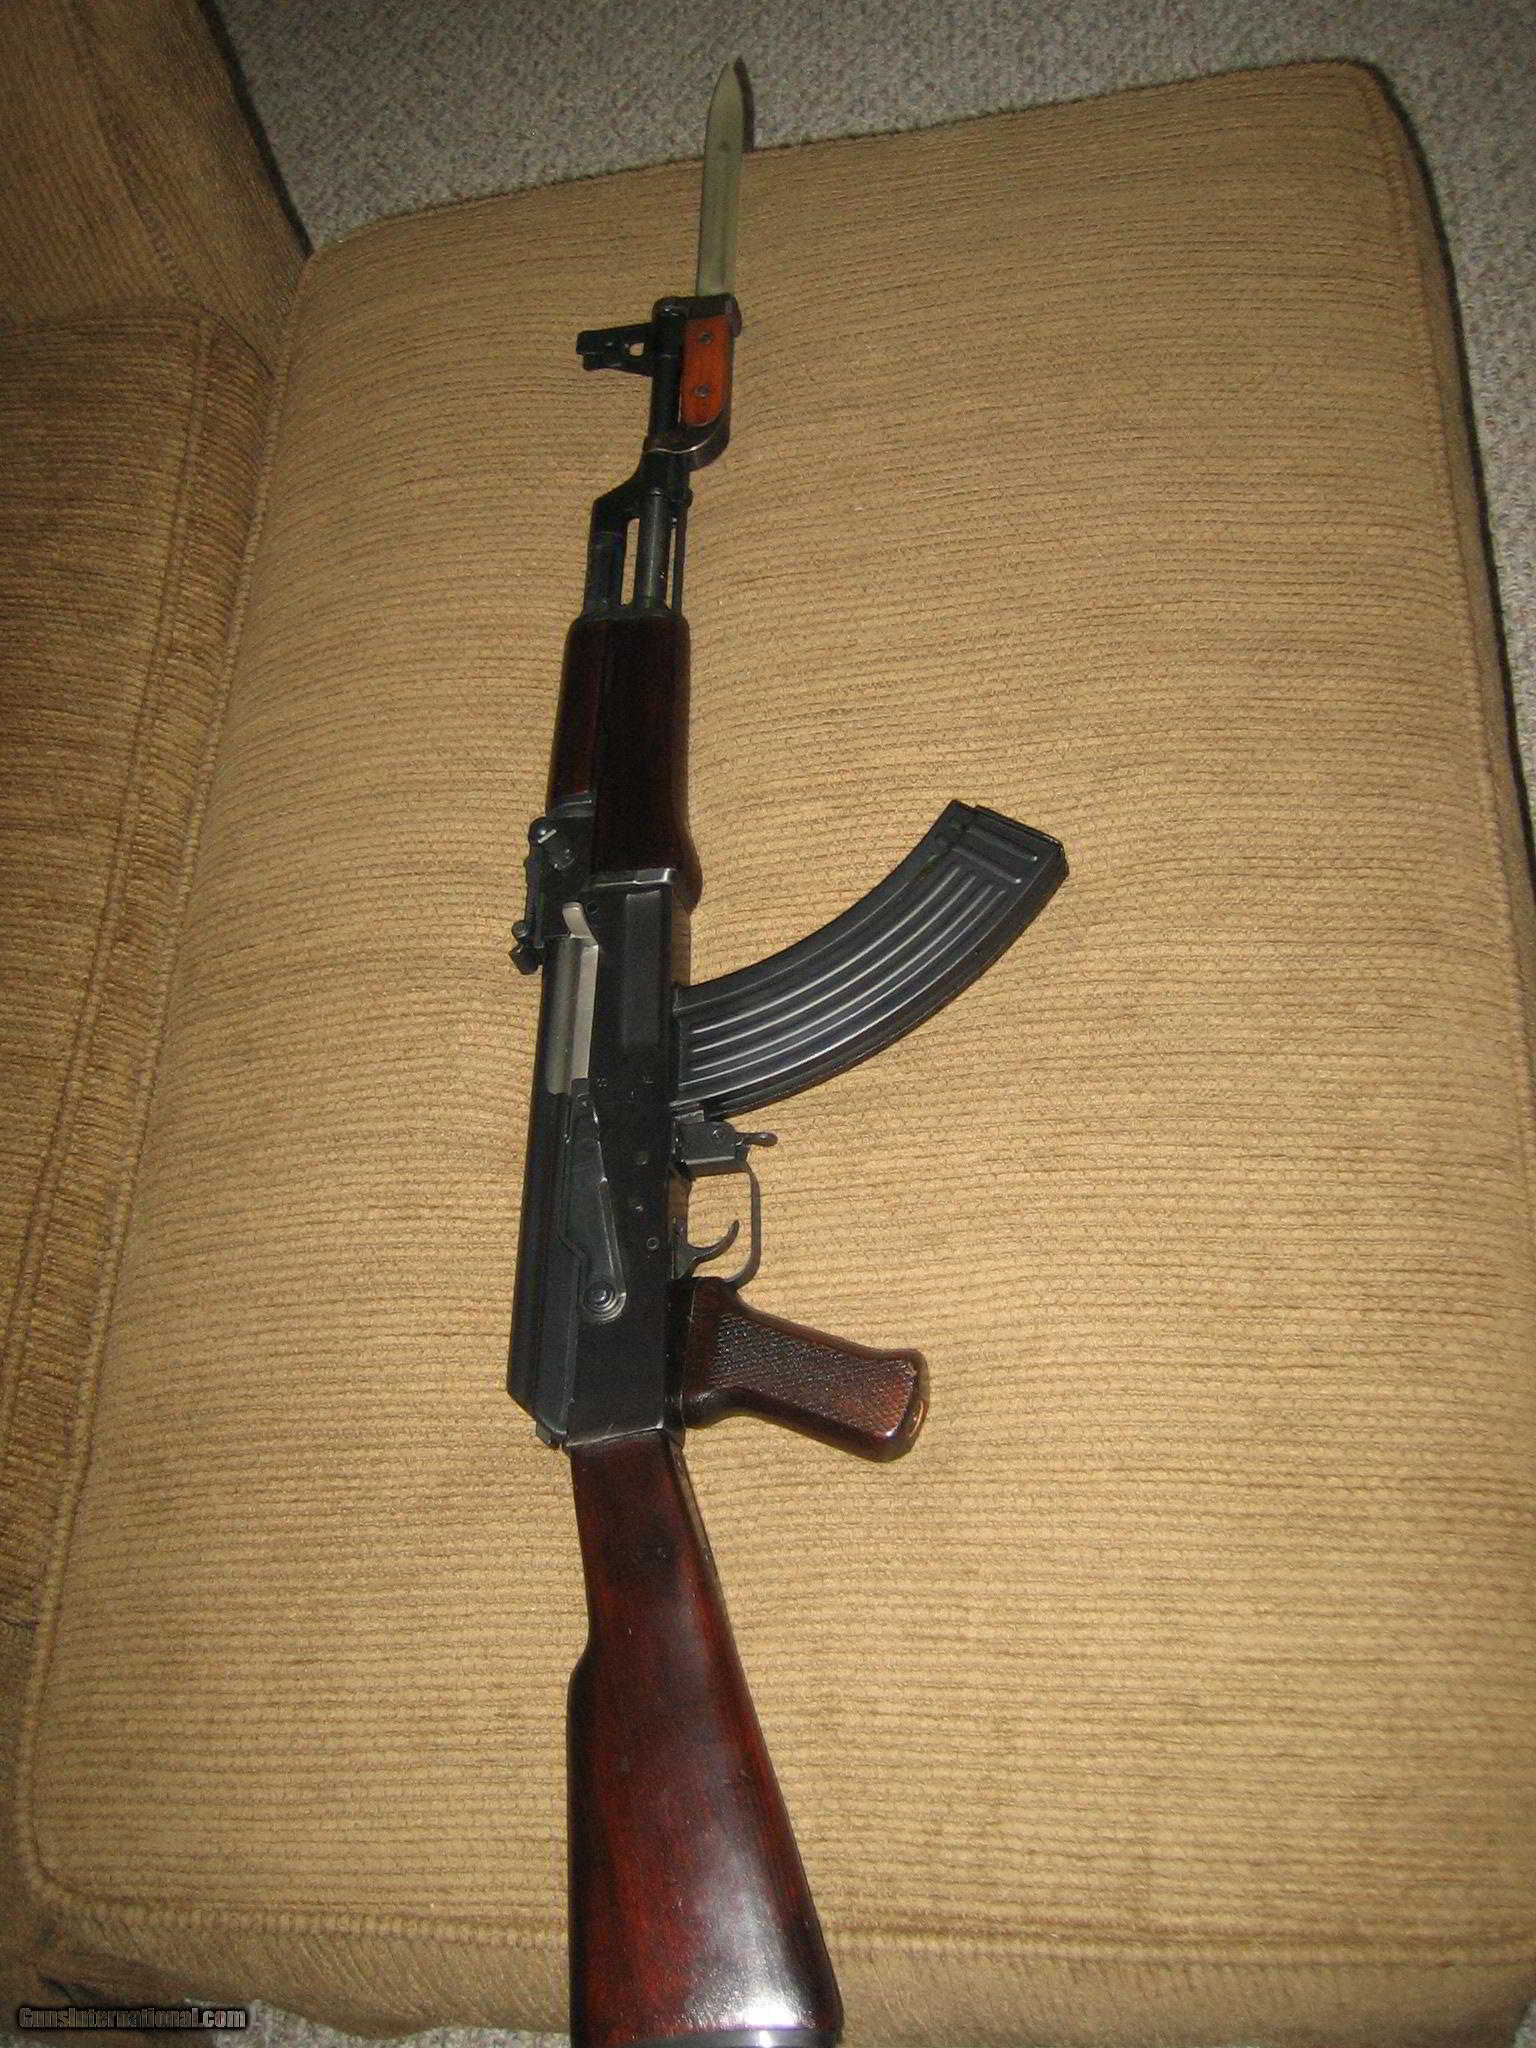 Poly Tech Legend AK-47 New in Box Unfired for sale